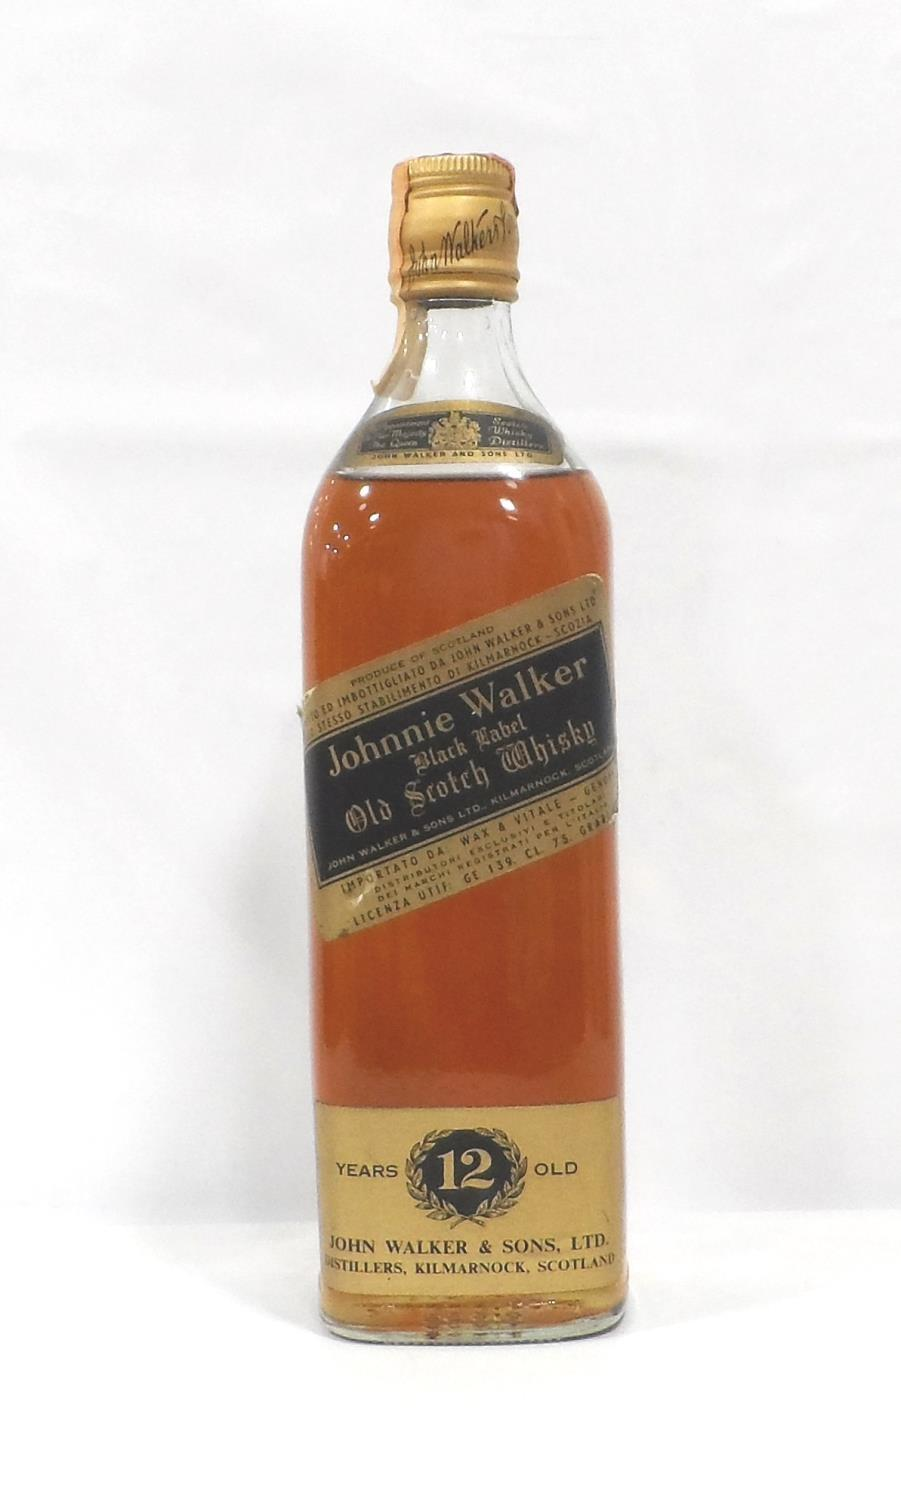 Lot 36 - JOHNNIE WALKER BLACK LABEL 1970s An export bottle of the Johnnie Walker Black Label Blended Scotch